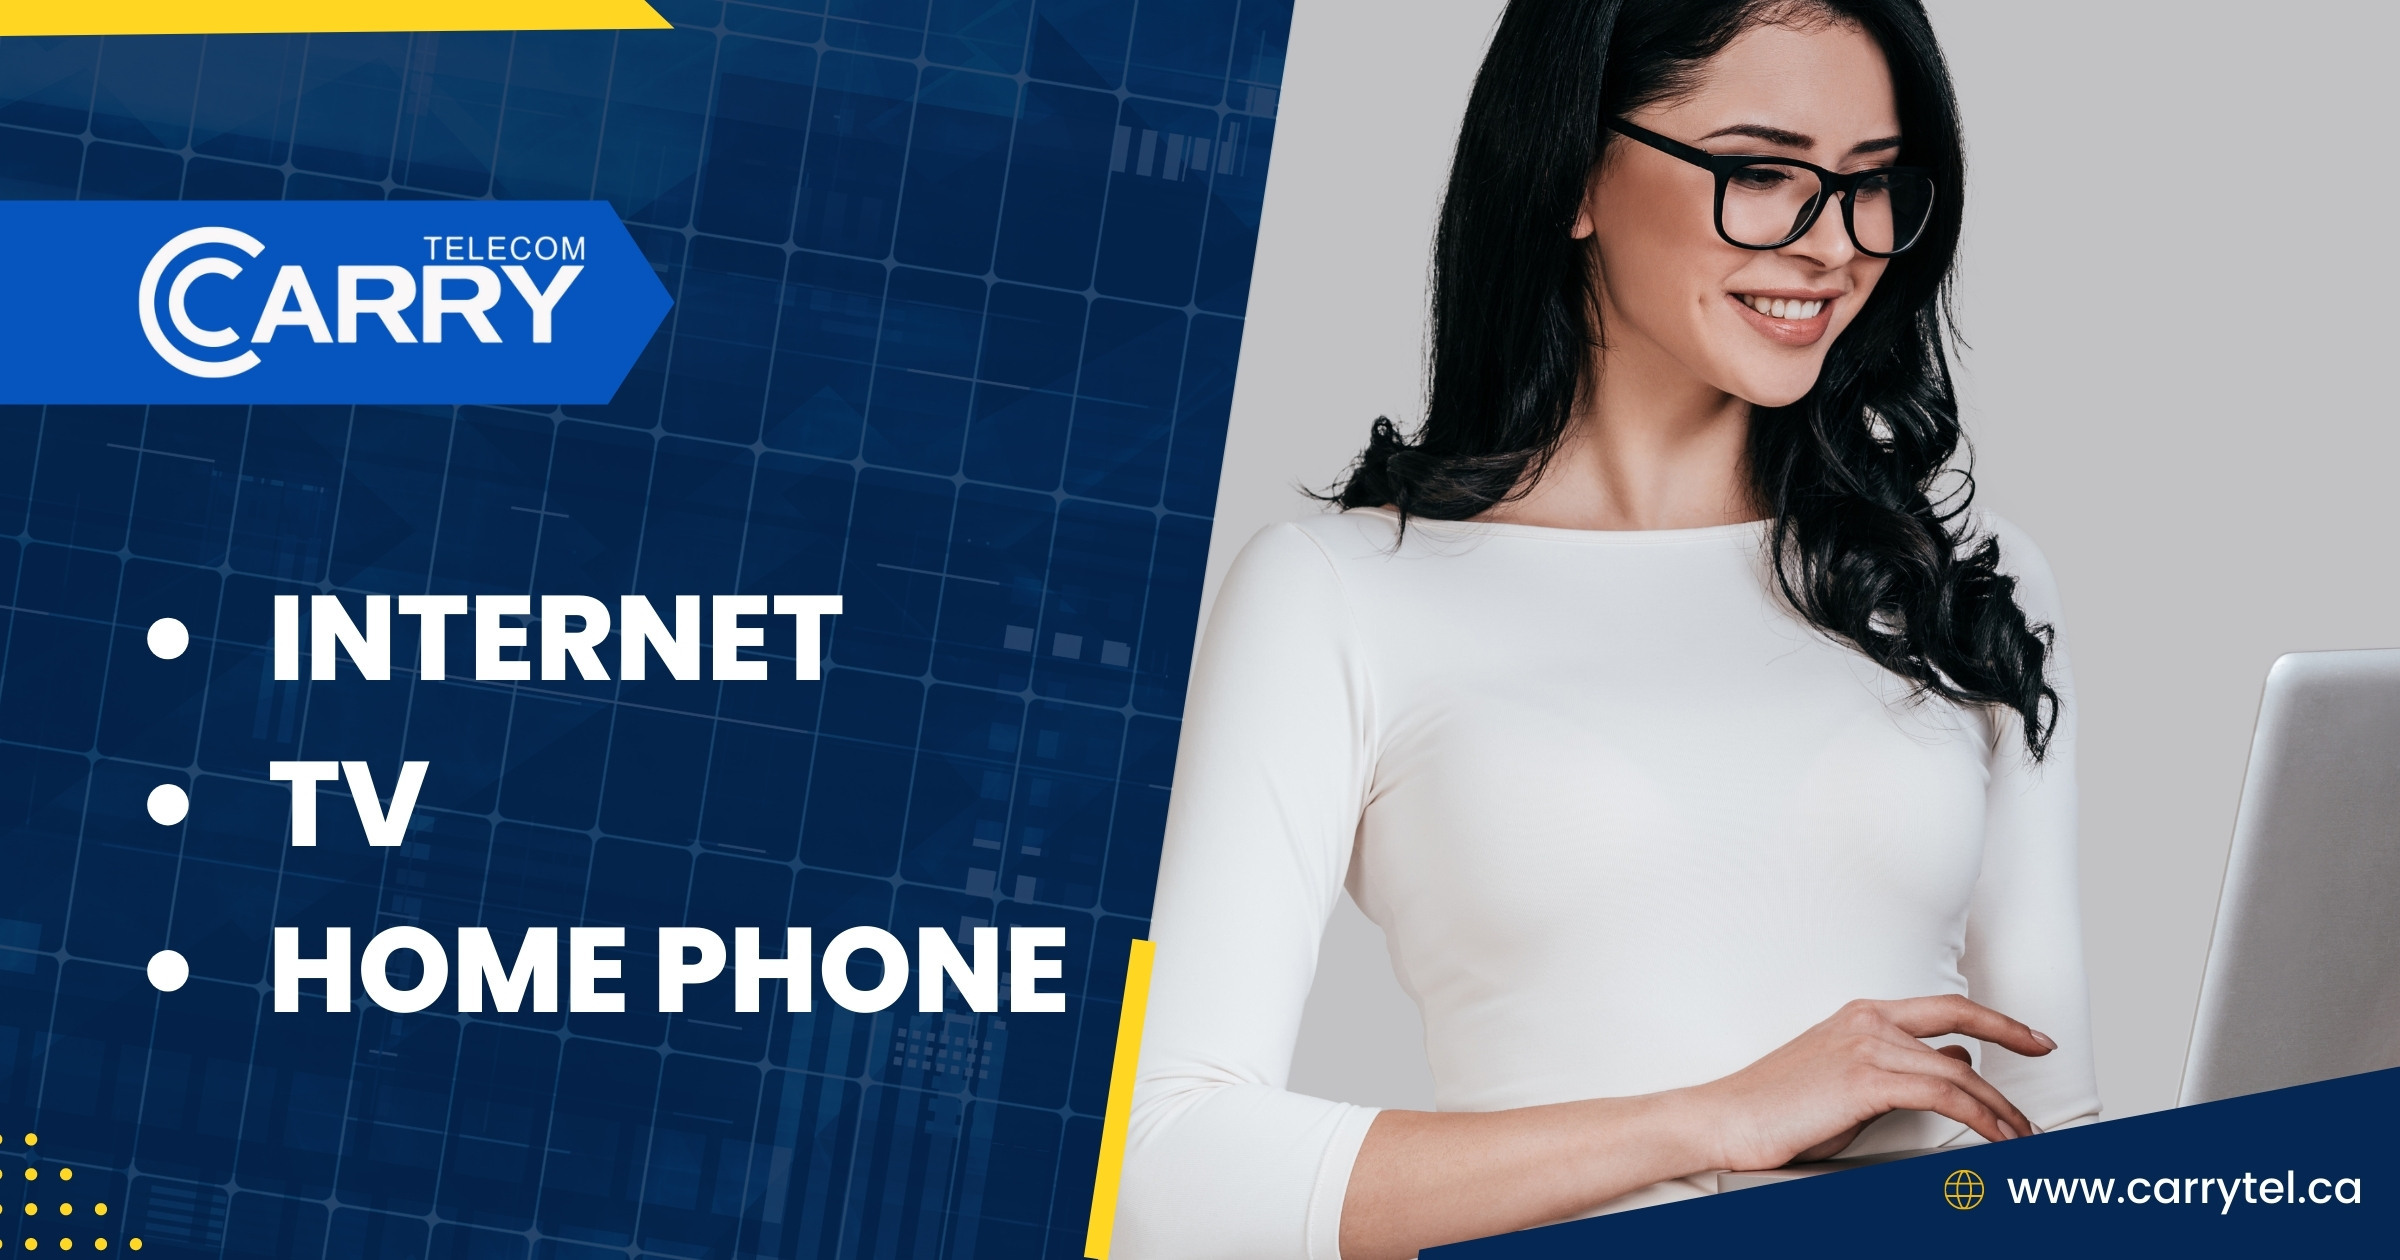 New to Carrytel Customer only- Cable Internet 150 for $34.99